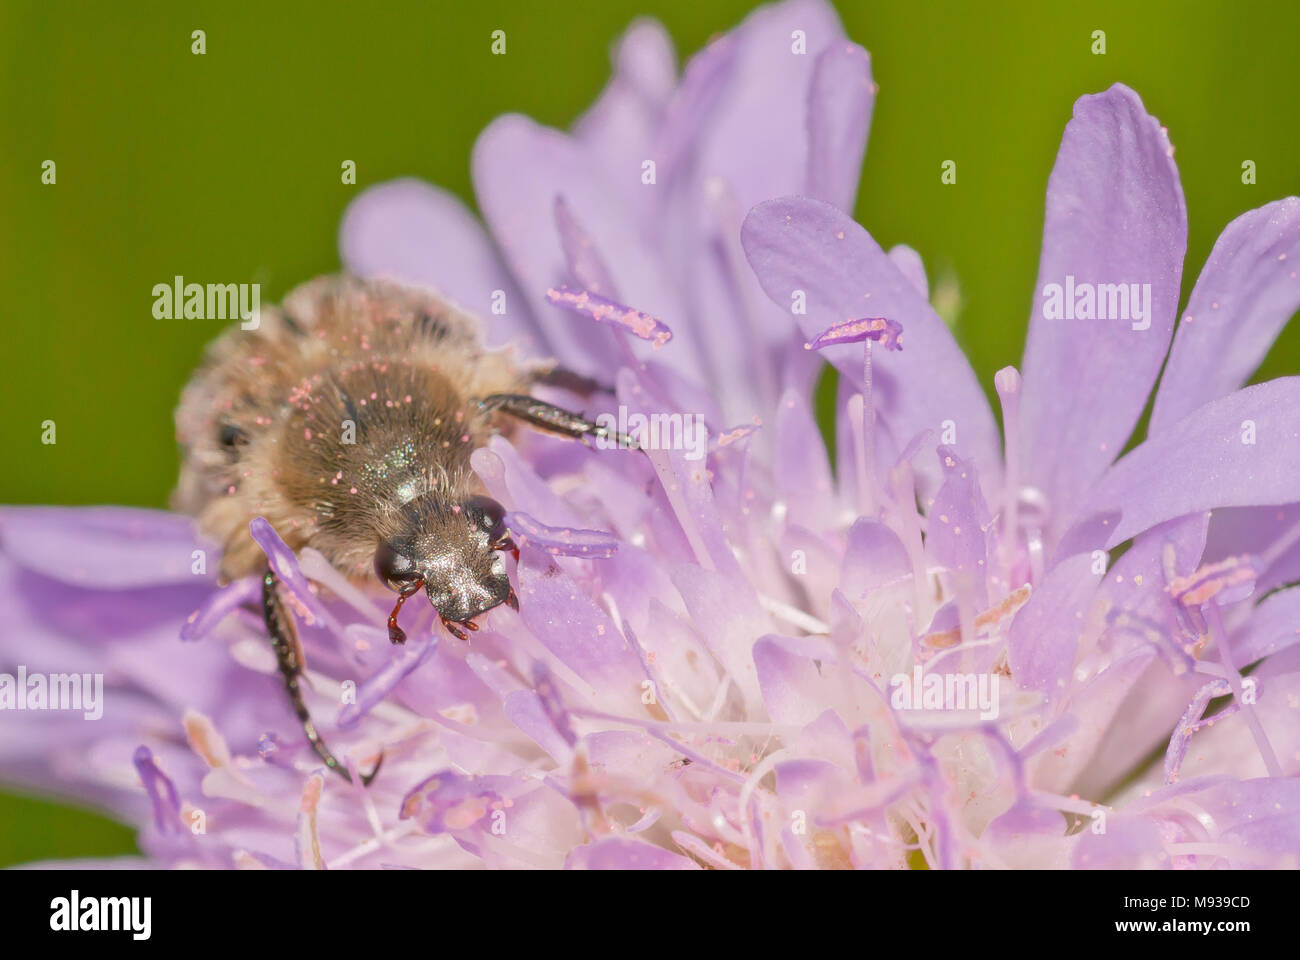 A hairy flower scarab beetle, Trichiotinus assimilis, covered in pink pollen, crawling on a field scabious flower, Knautia arvensis. - Stock Image